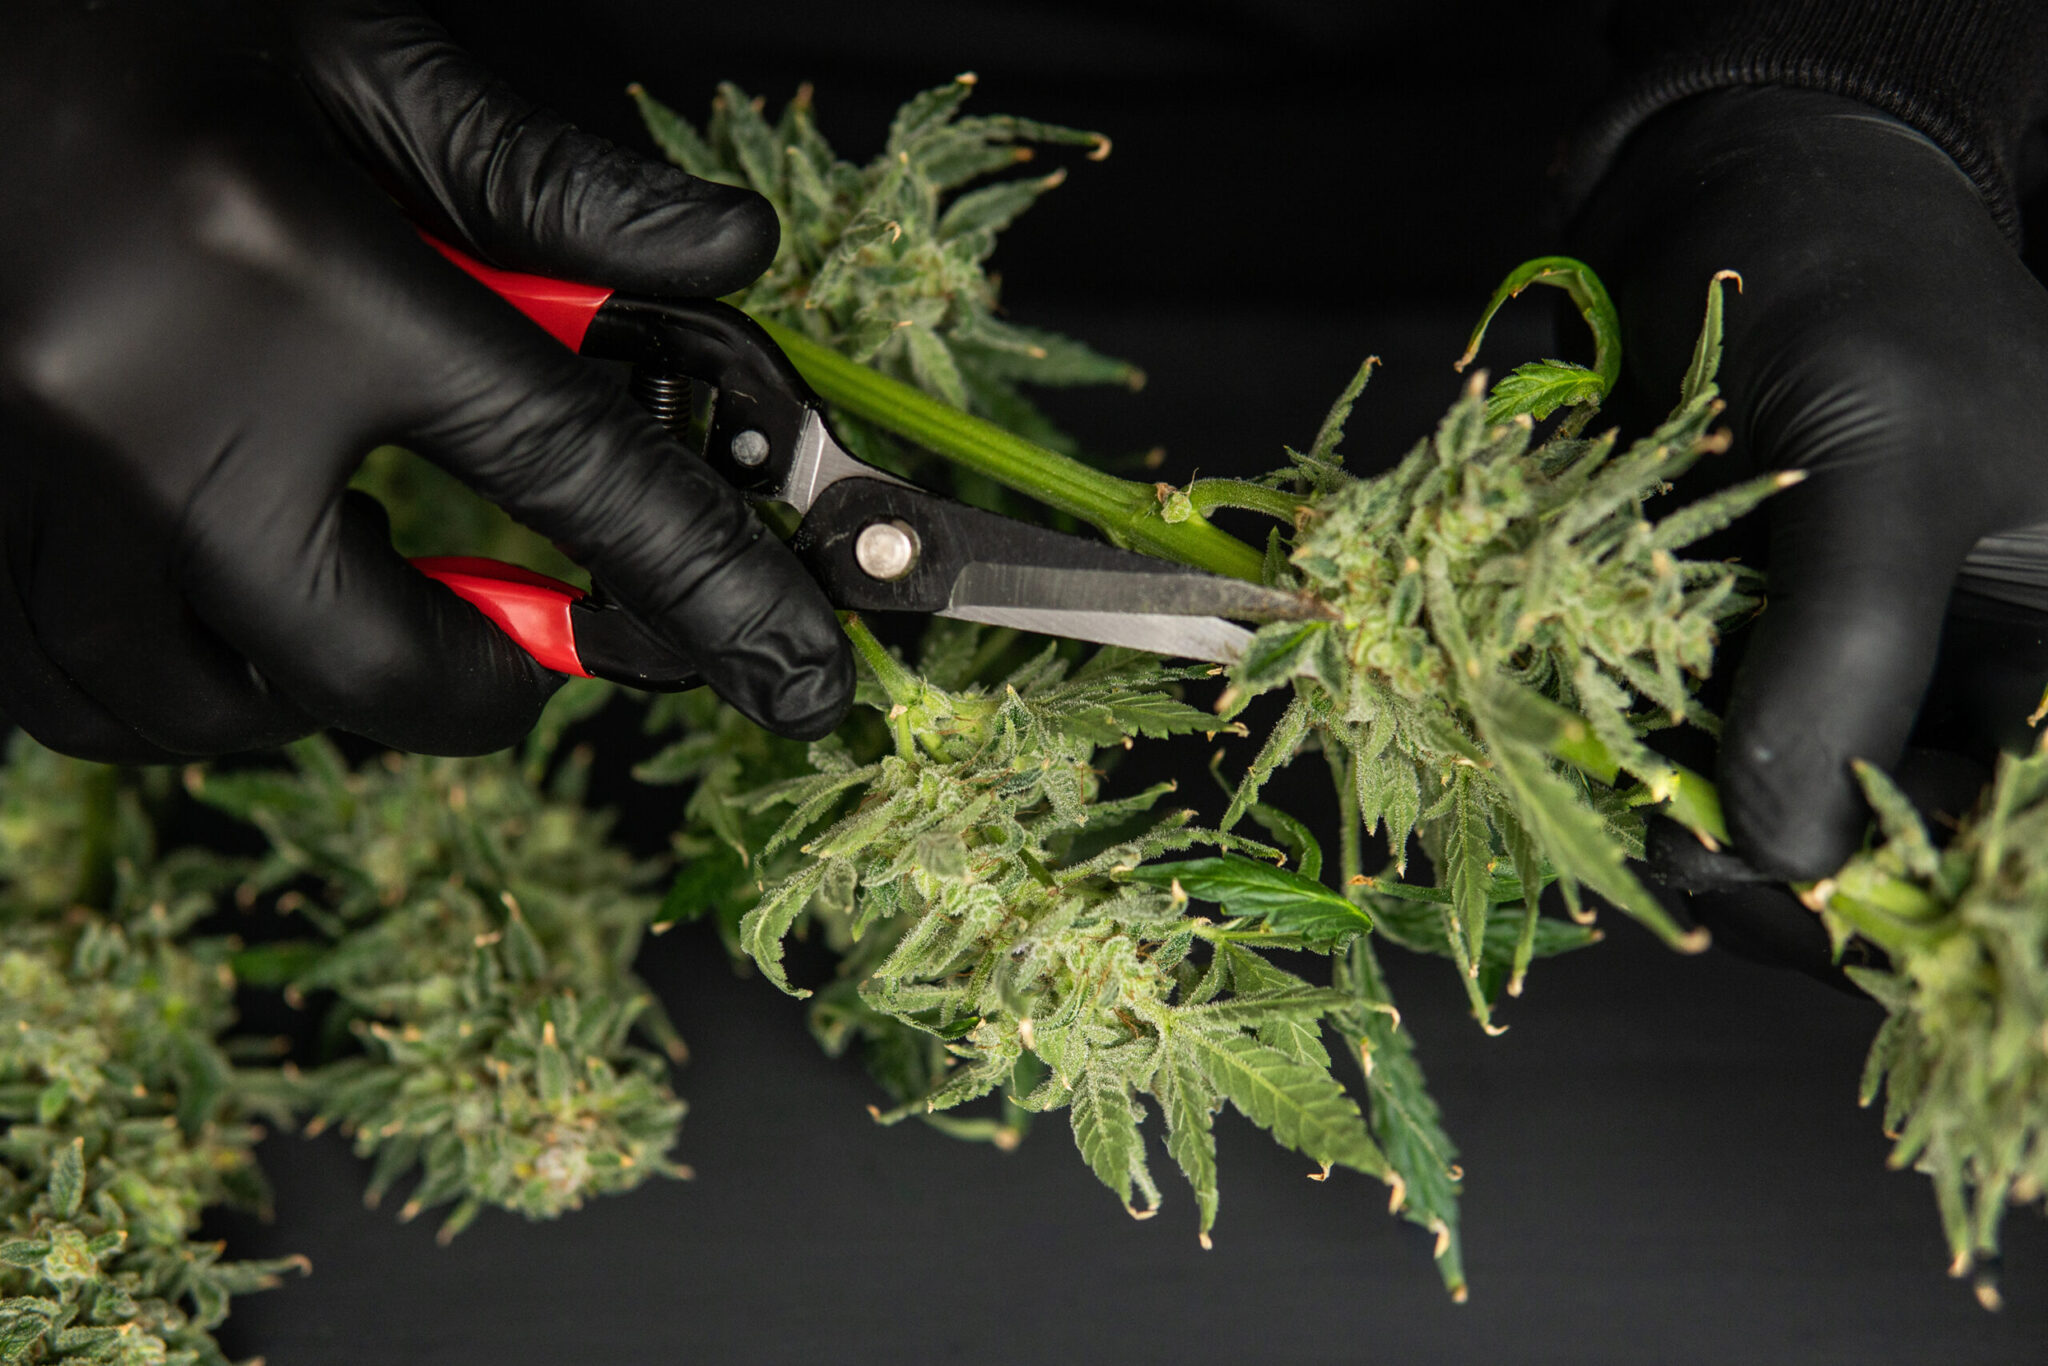 Trim before drying. The sugar leaves on buds . Mans hands trimming marijuana bud. Growers trim their pot buds before drying. Growers trim cannabis buds. Harvest weed time has come.